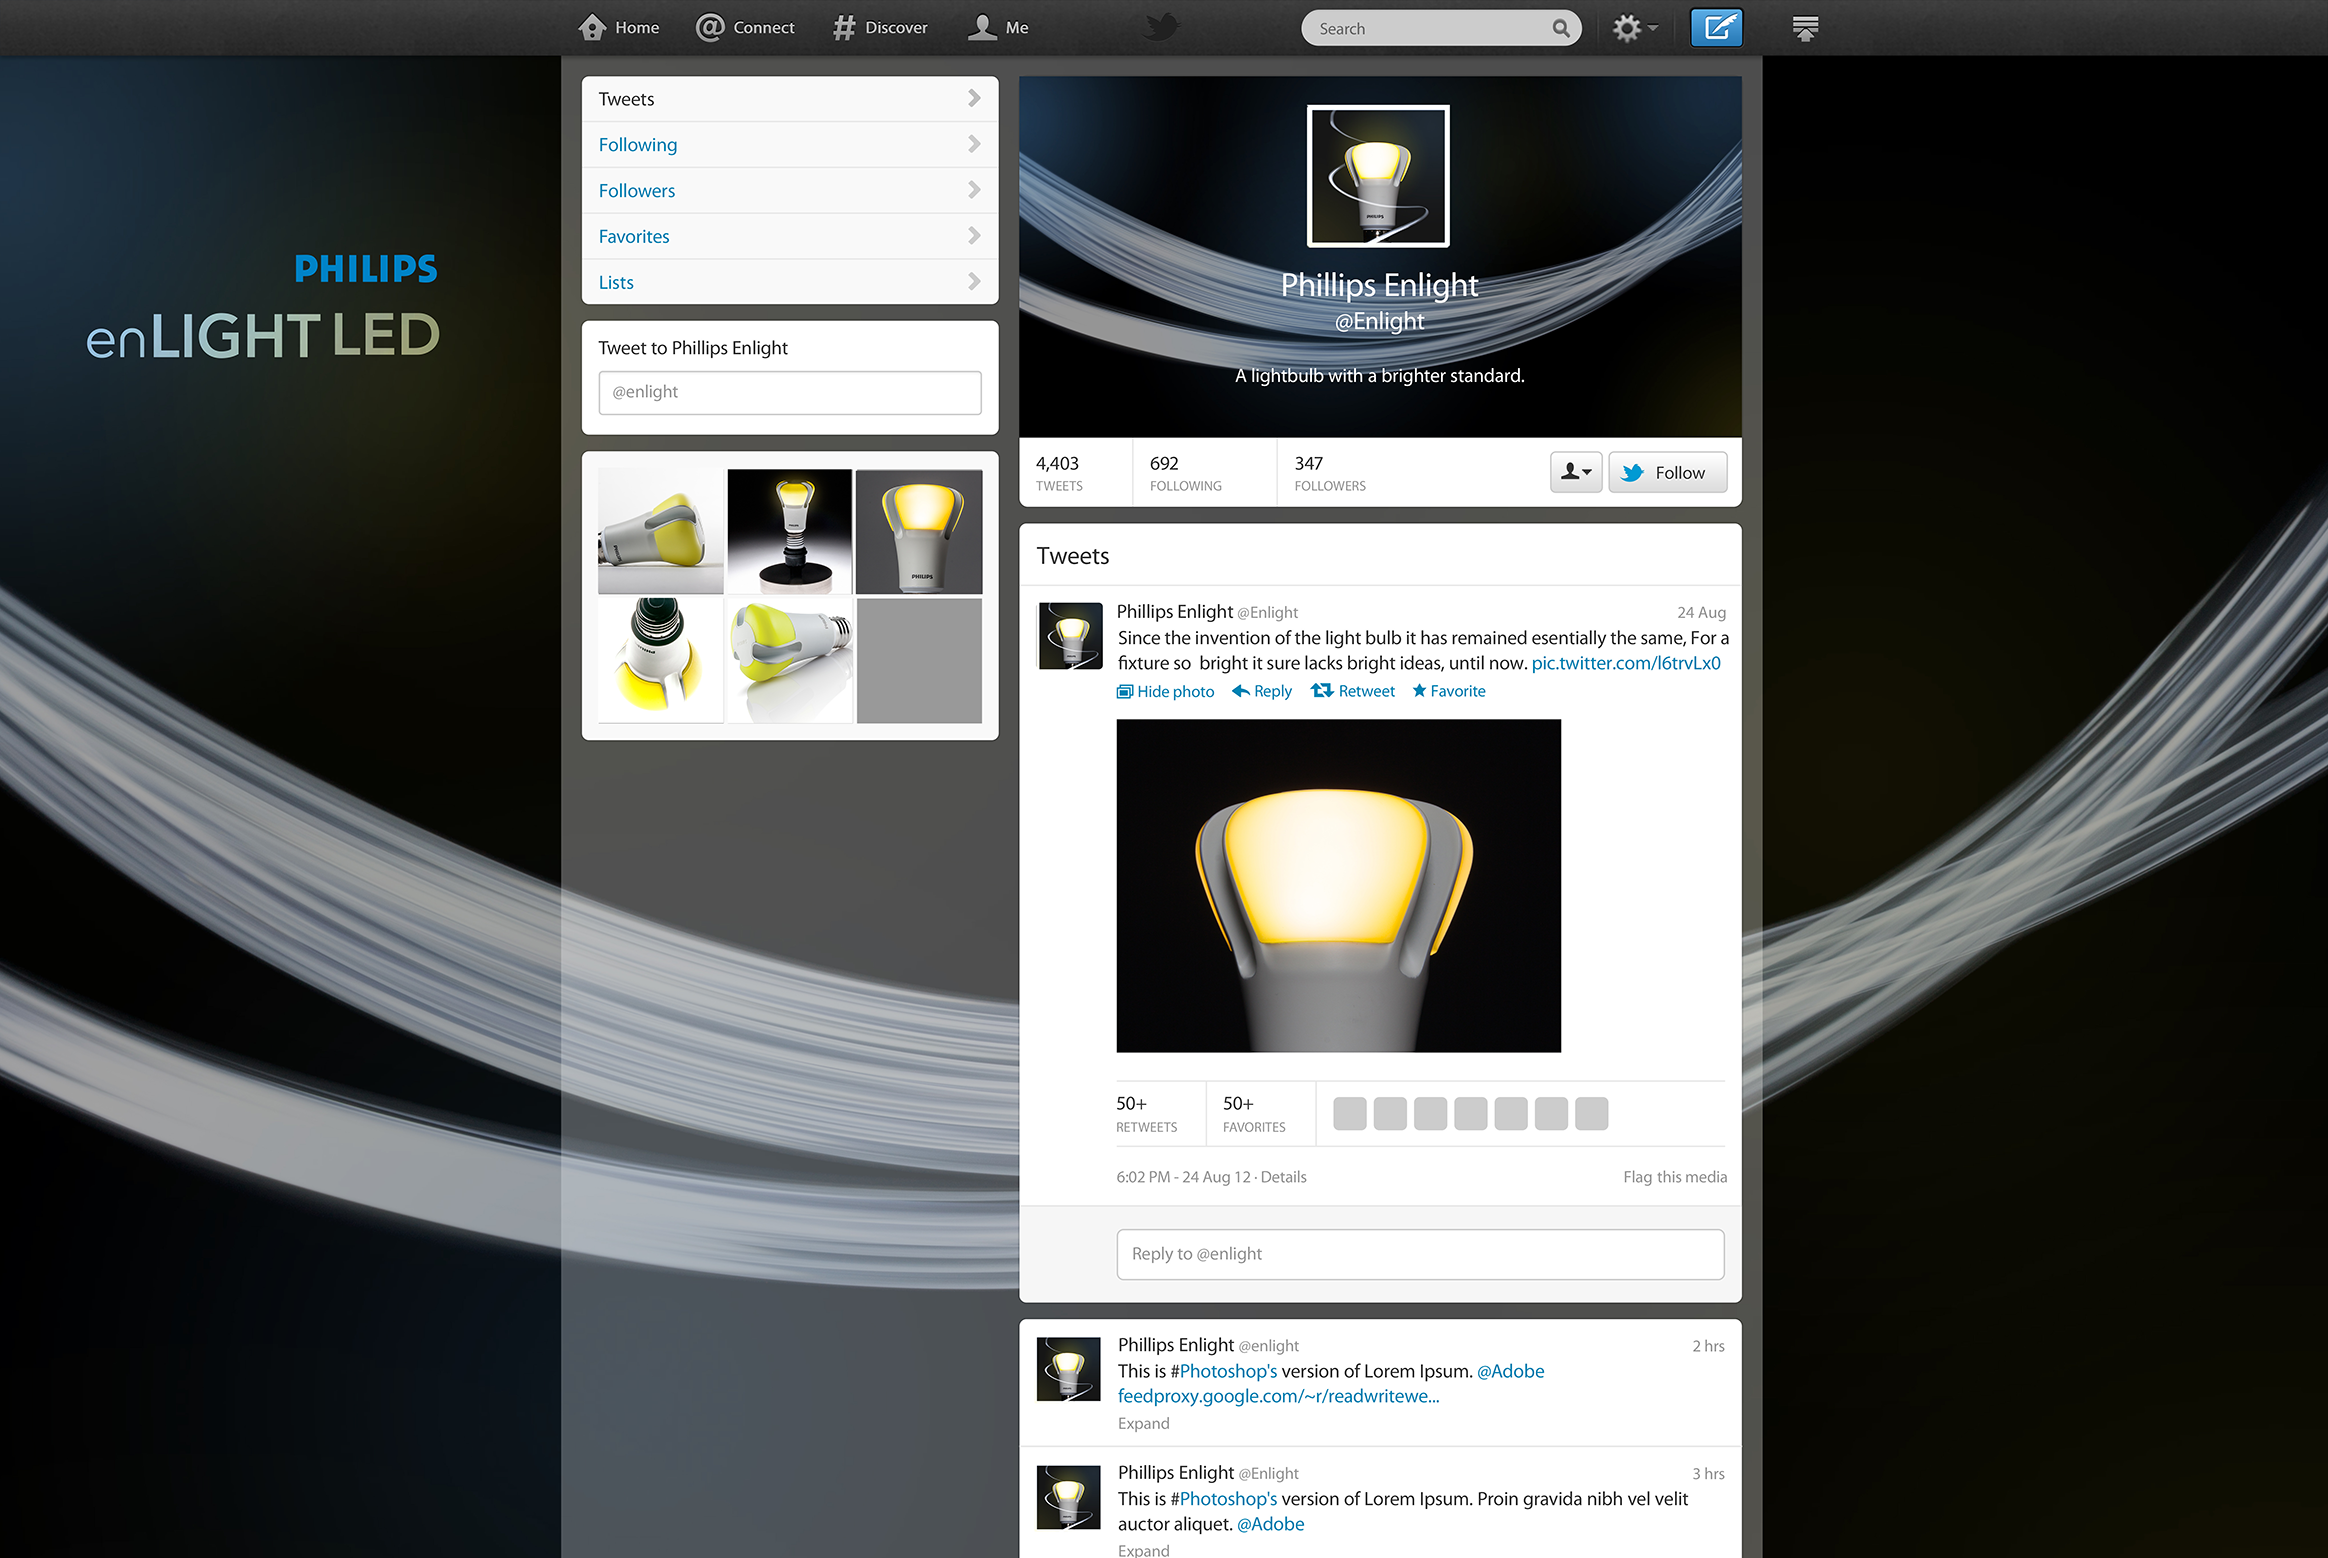 Enlight_twitterpage.png